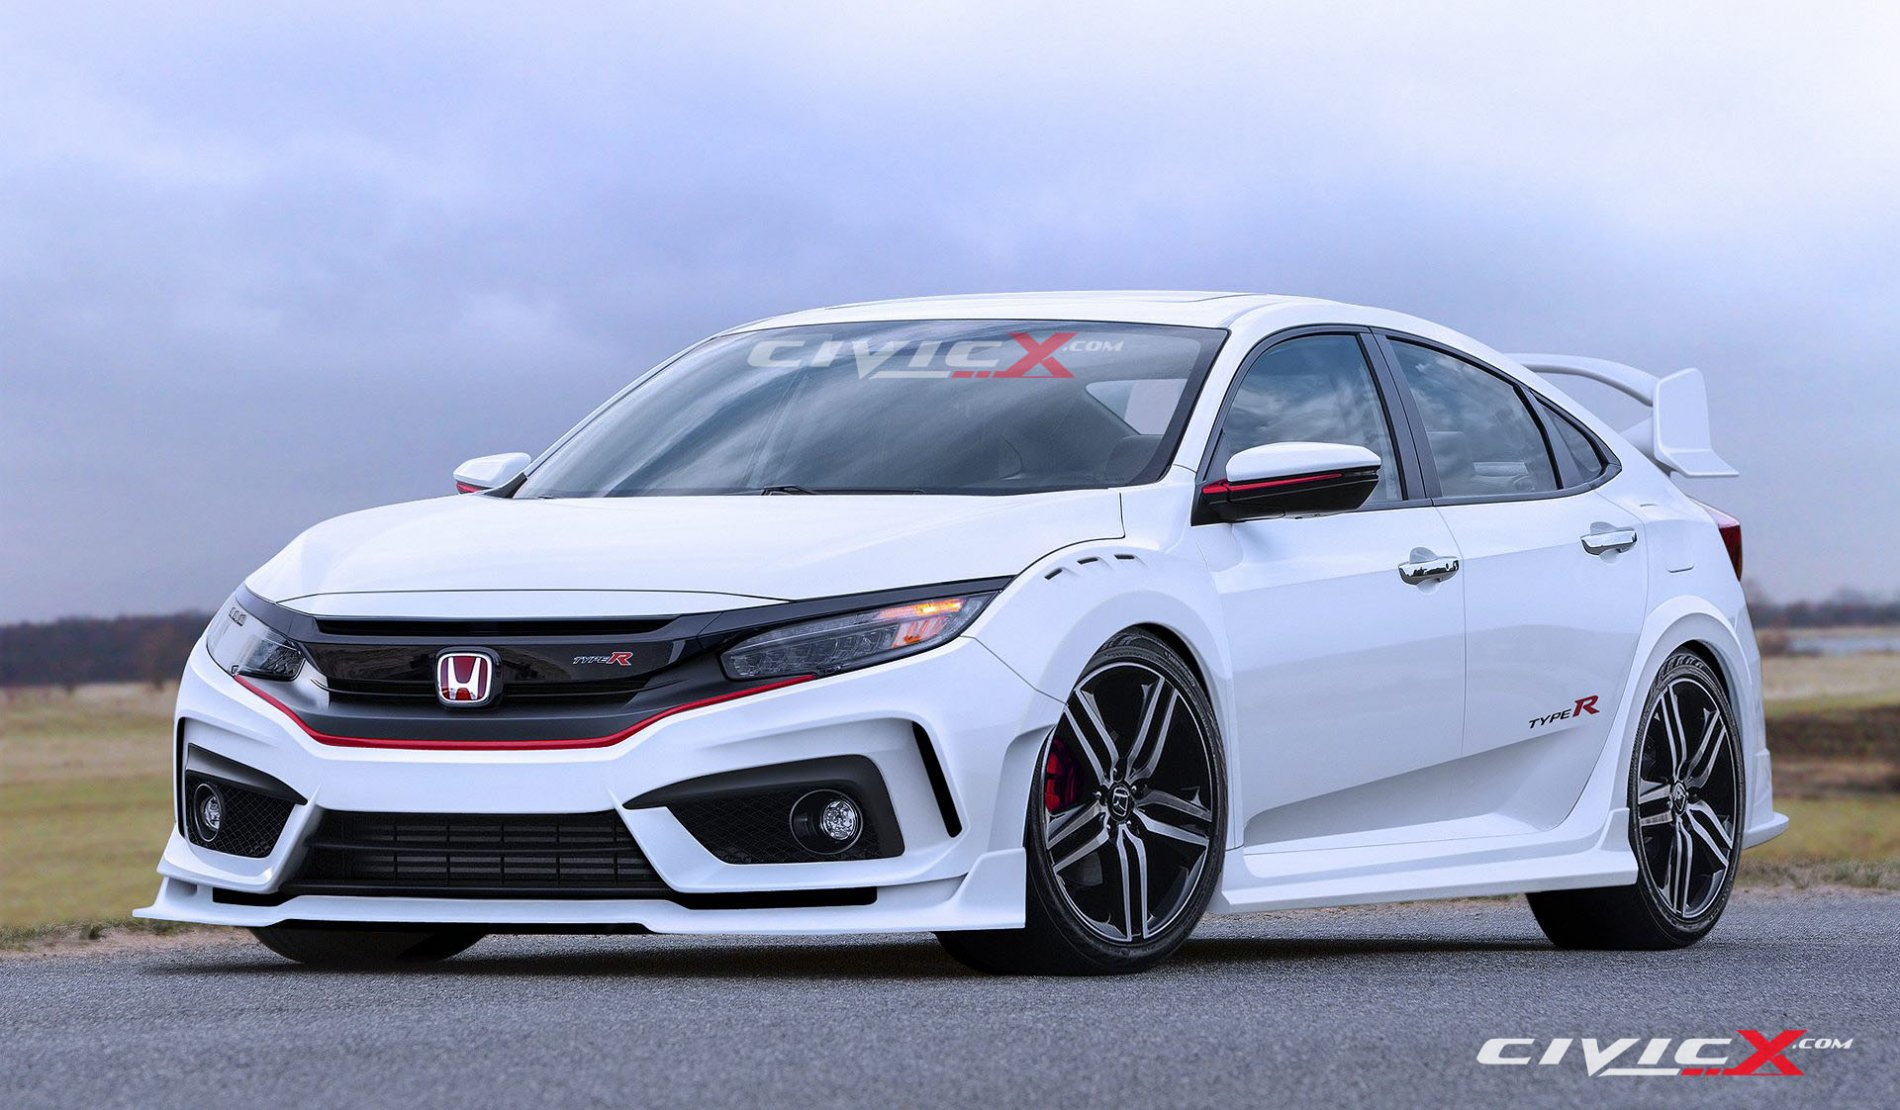 la prochaine honda civic type r est en route plan te. Black Bedroom Furniture Sets. Home Design Ideas